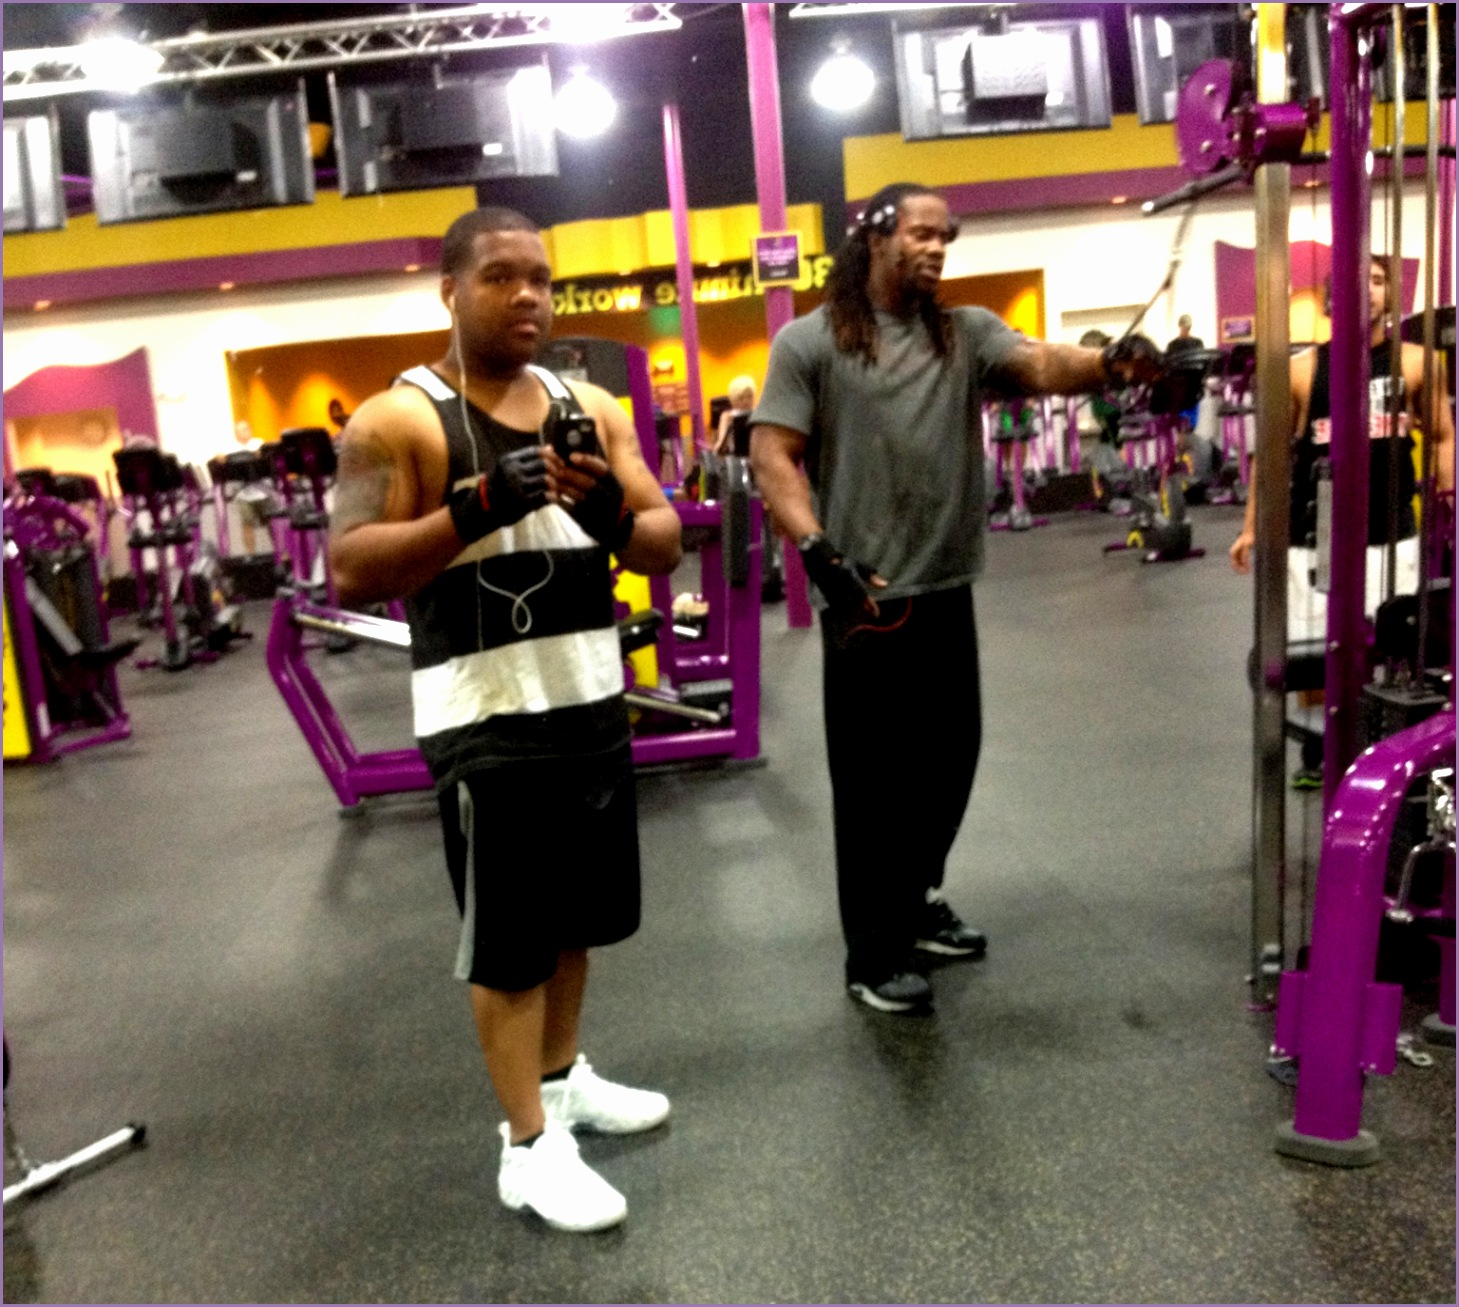 Free Weights Planet Fitness: 5 Planet Fitness Weights